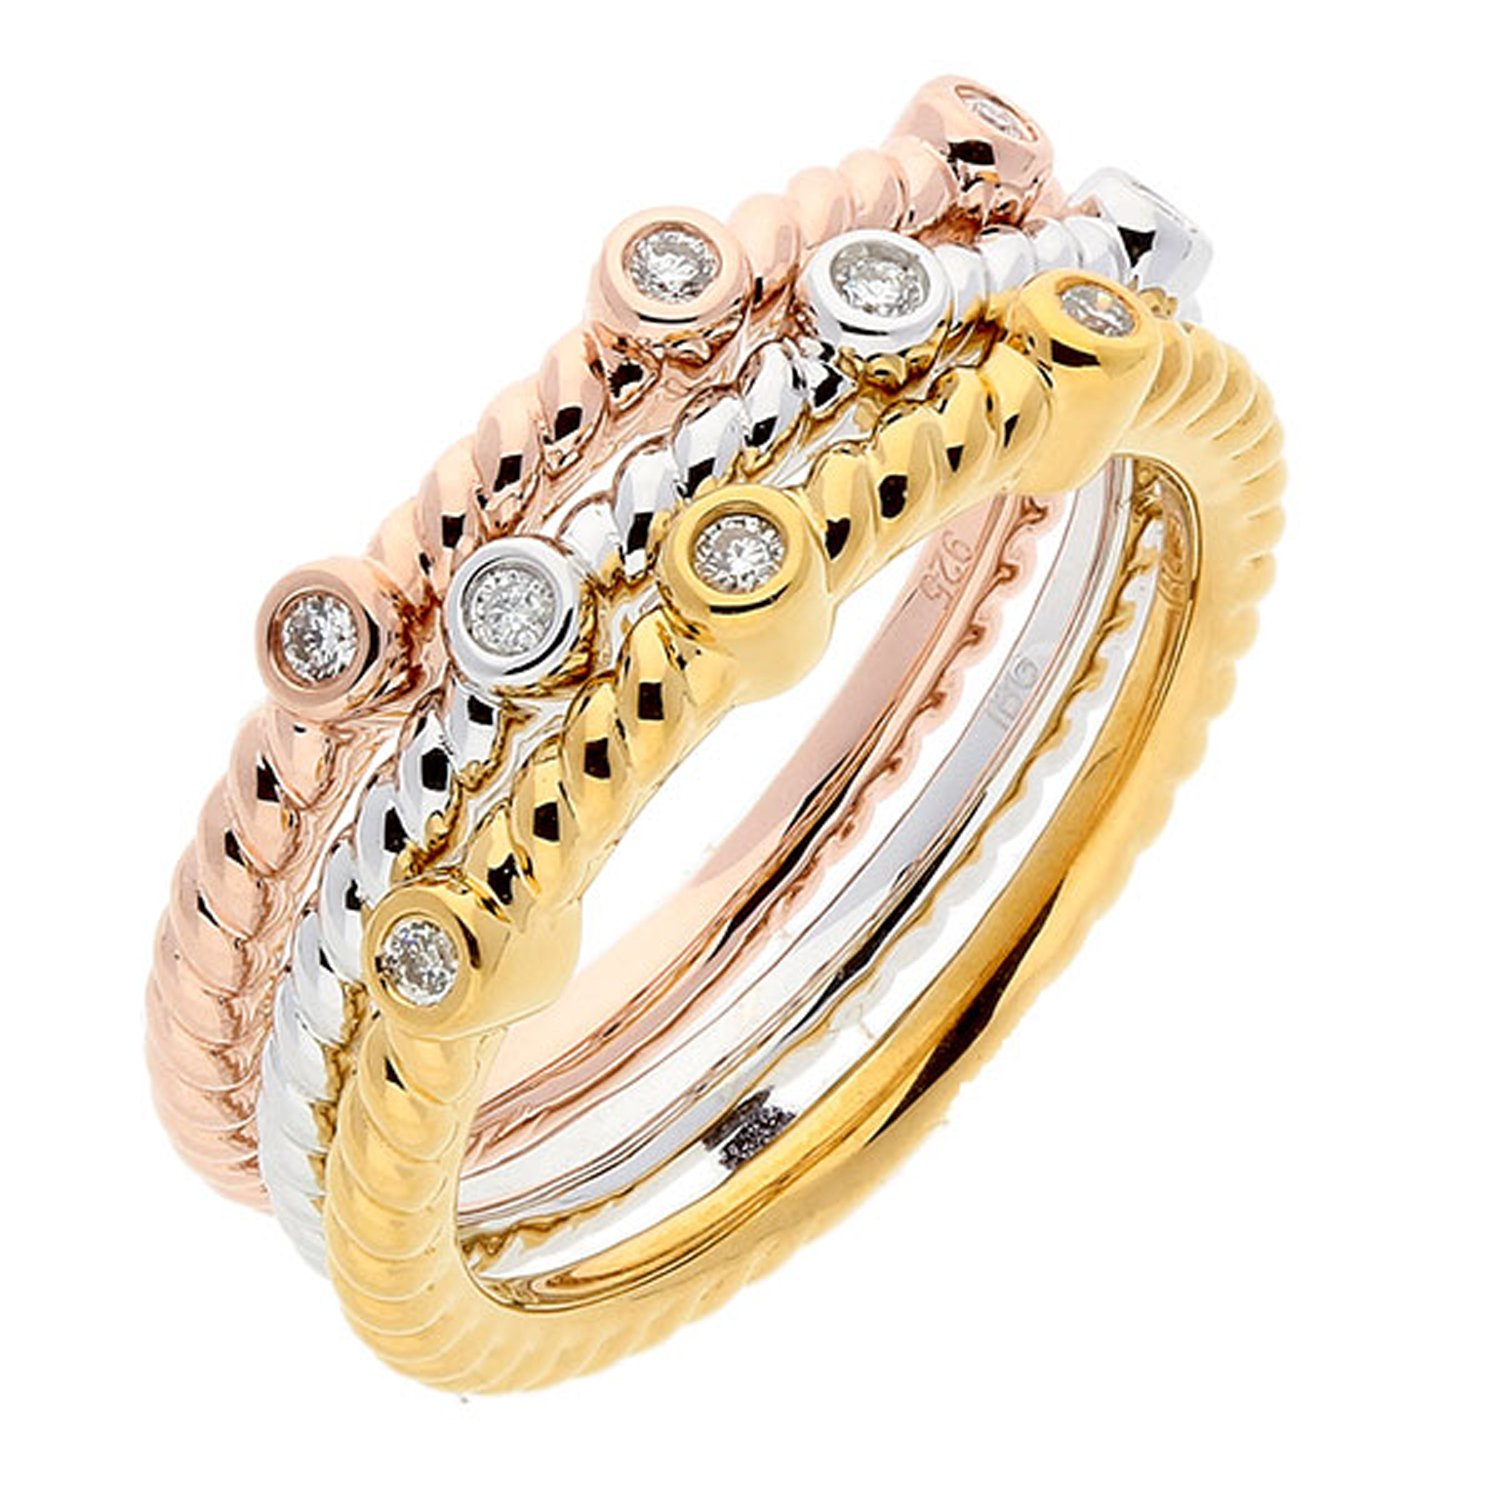 Set Of 3 White, Yellow And Rose Sterling Silver Diamond Accent Stackable Ring (1/10 cttw, I-J Color, I1-I2 Clarity), Size 5